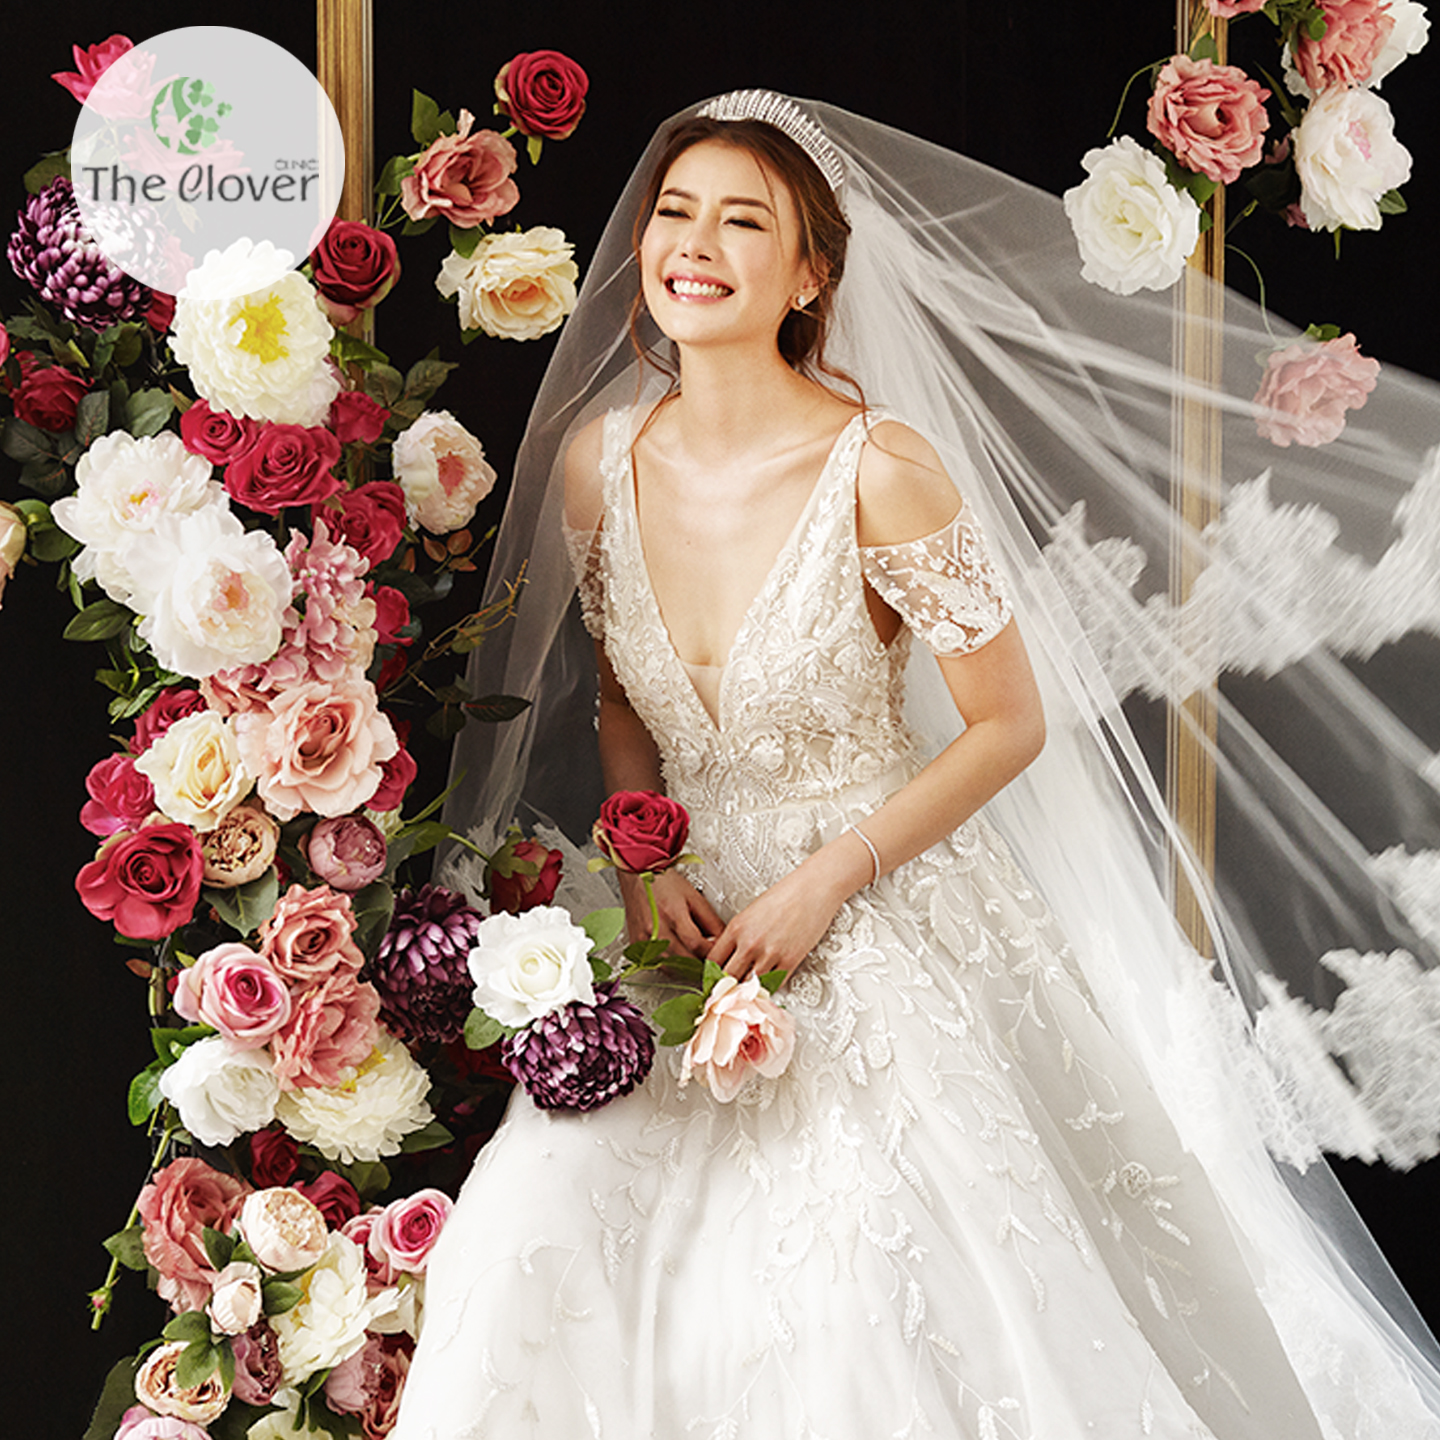 Wedding Beauty Plan for Most Beautiful bride